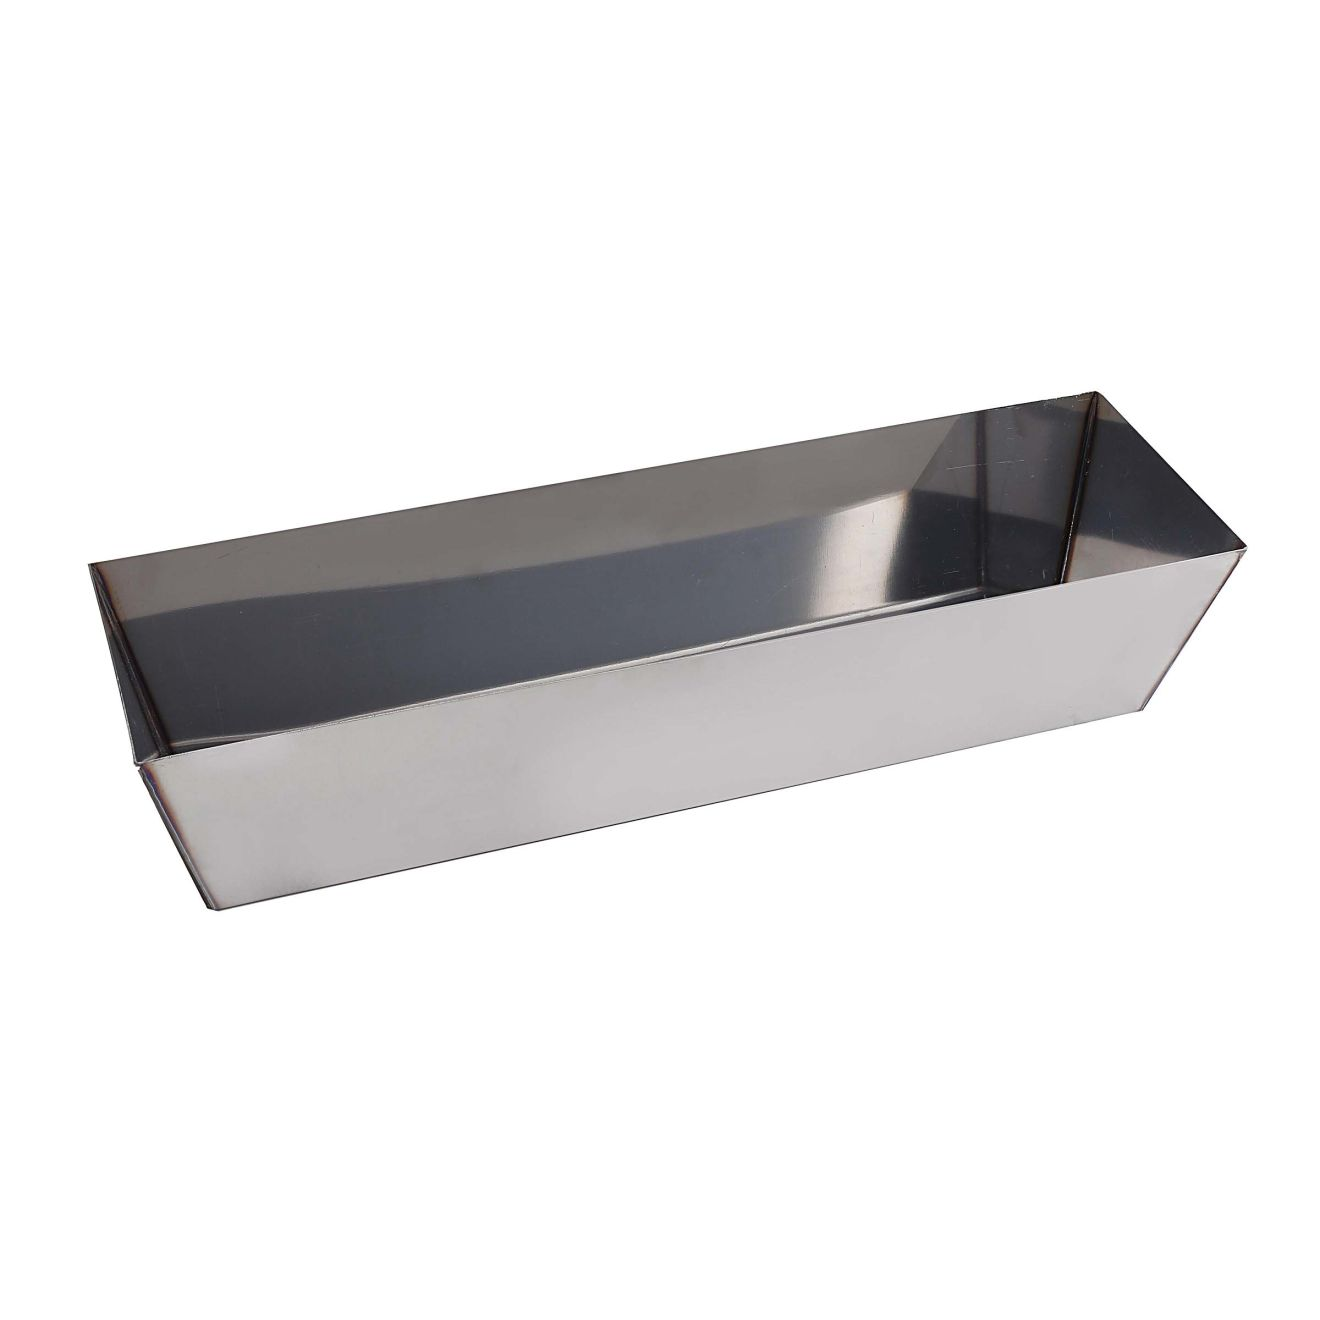 Odyn 14 in. Stainless Steel Mud Pan with Curved Bottom